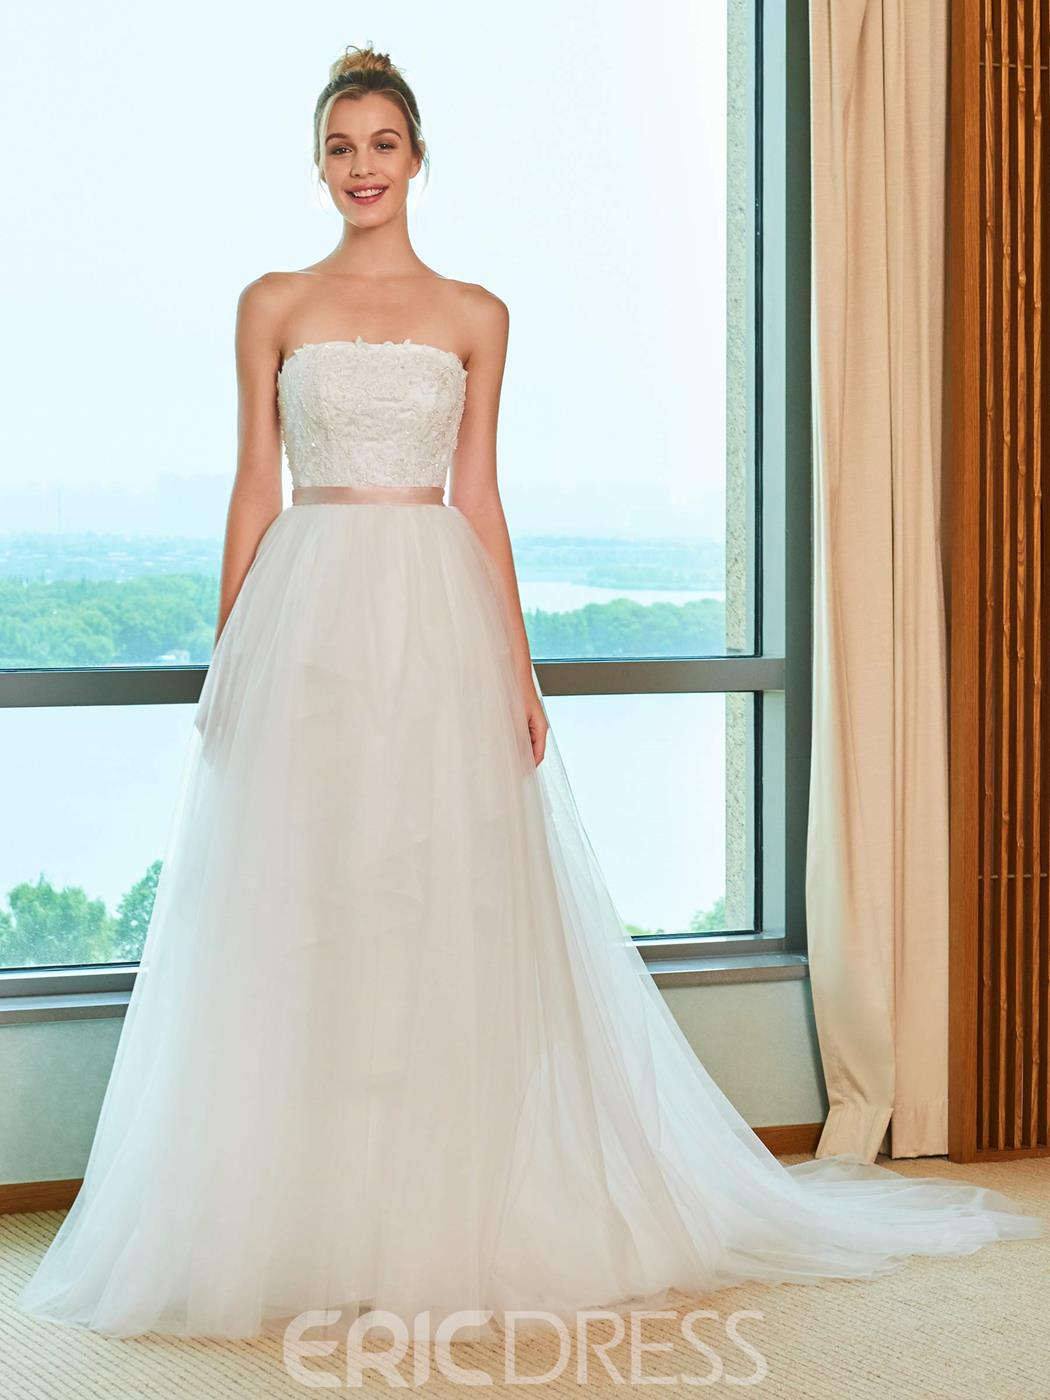 Ercdress Strapless Appliques Sequins Wedding Dress